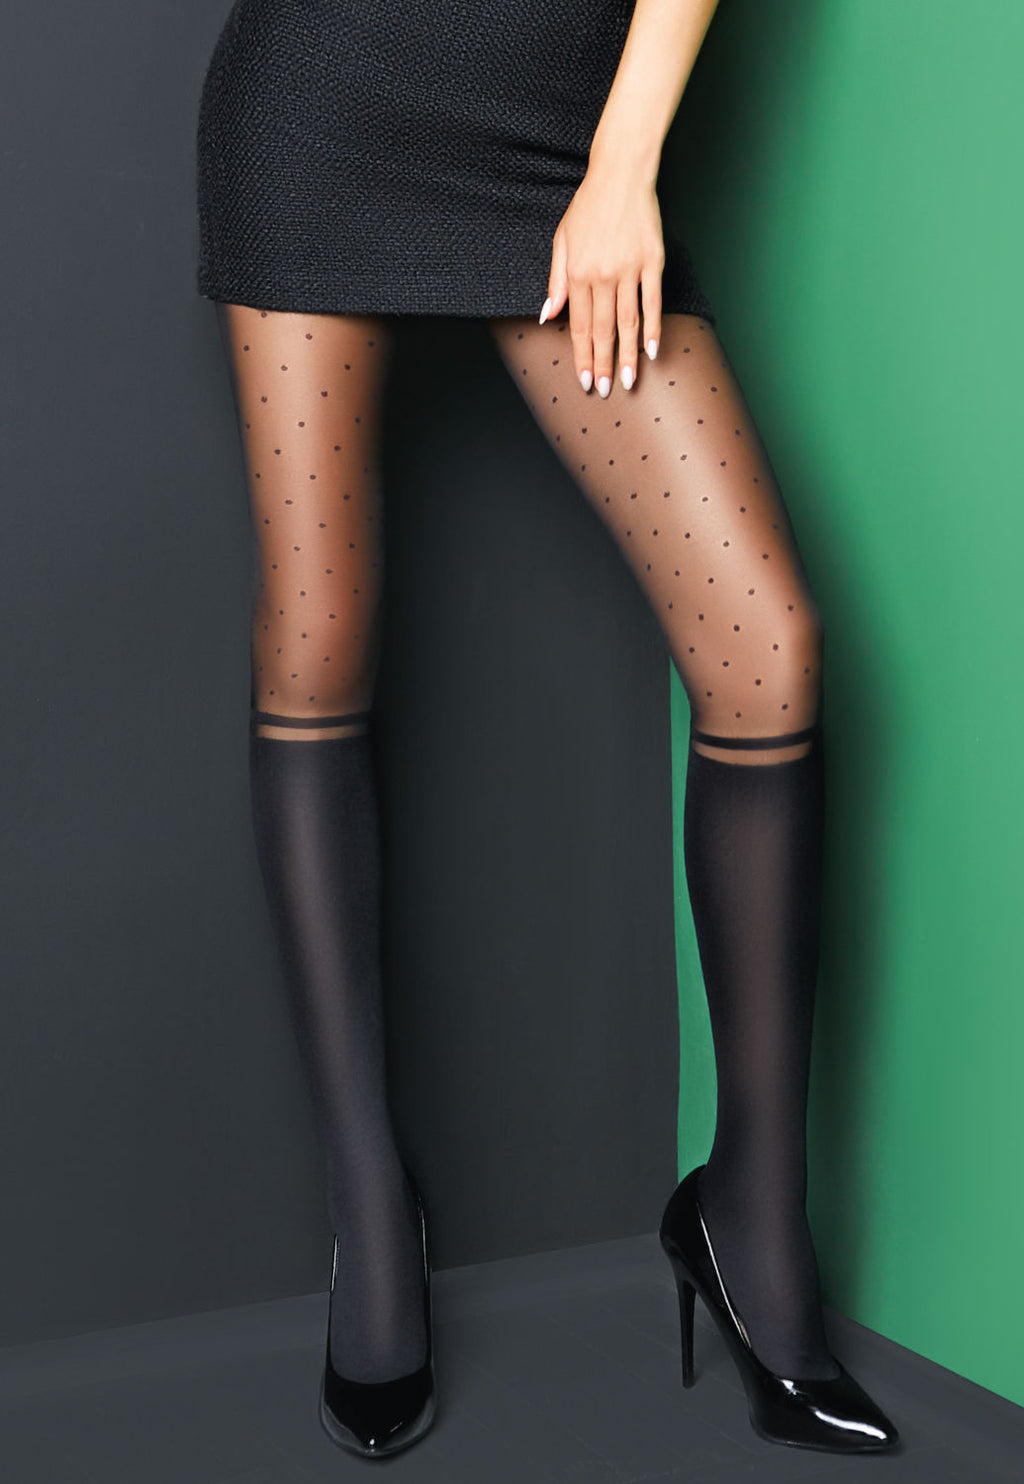 Crazy Daisy 01 Dotted Sheer Tights with Knee-Highs Effect by Giulia in black